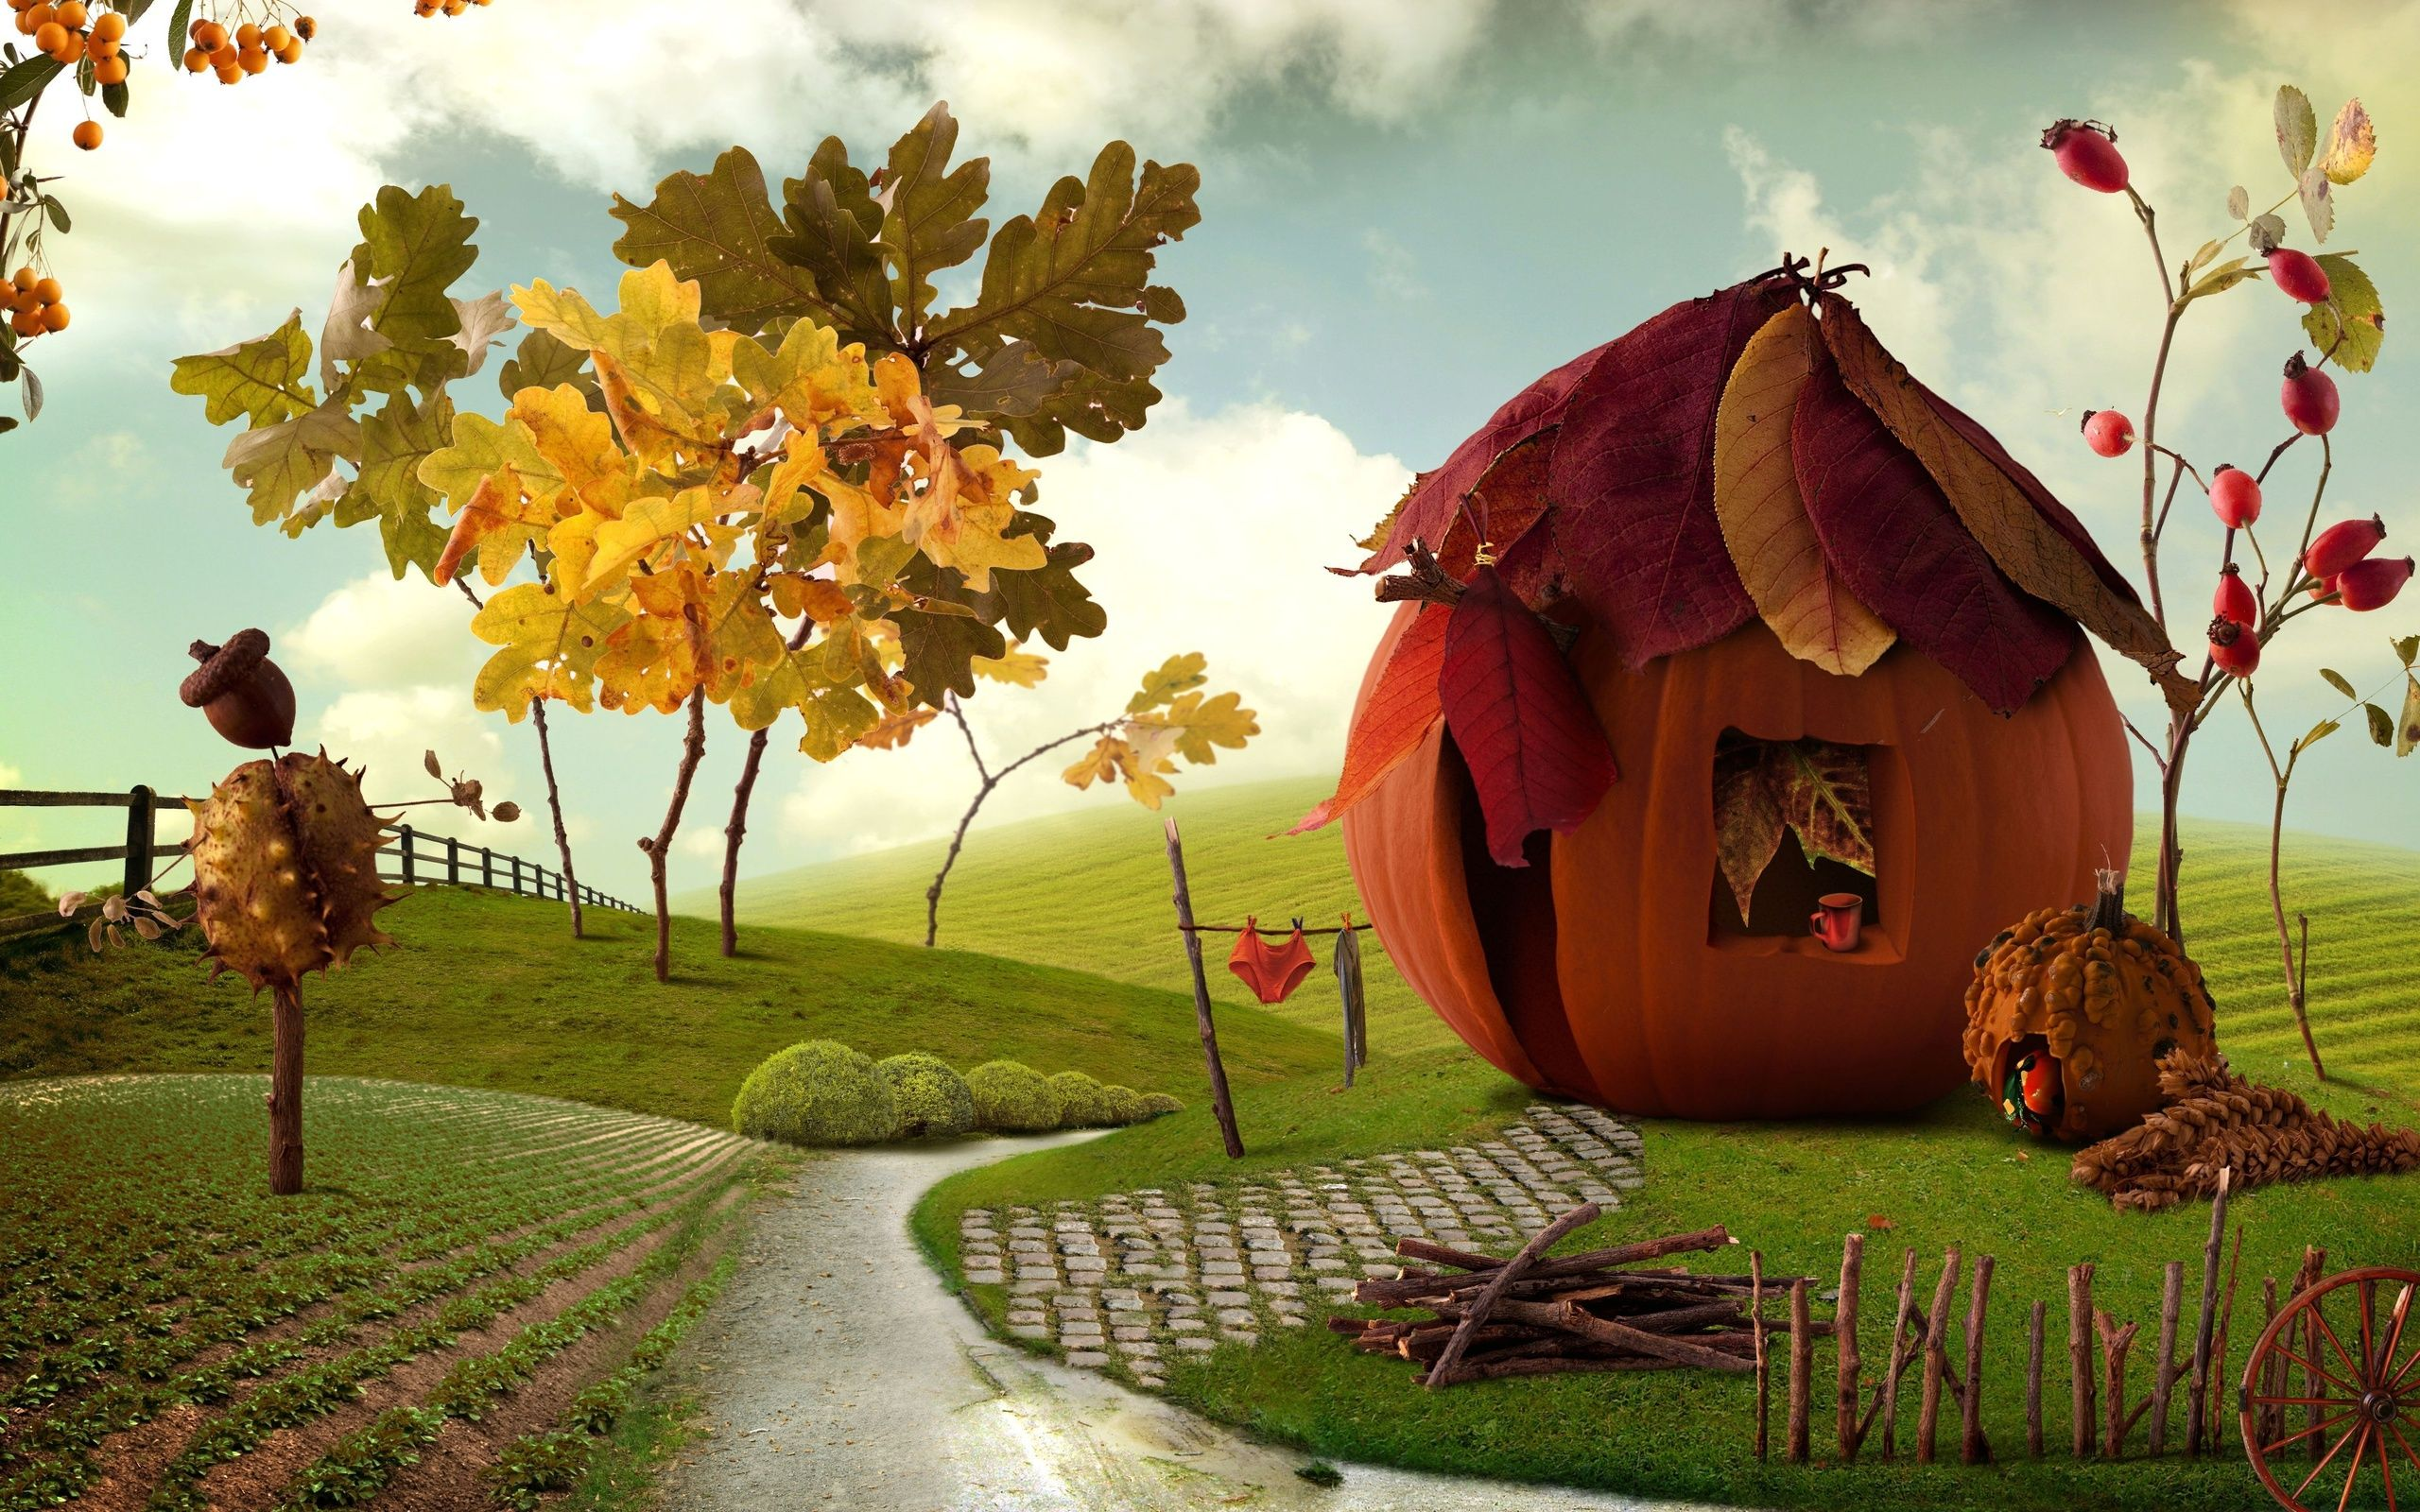 Autumn Art Wallpapers Widescreen With Hd Desktop 2560x1600 Px 1 55 Mb Thanksgiving Wallpaper Thanksgiving Background Colorful Landscape